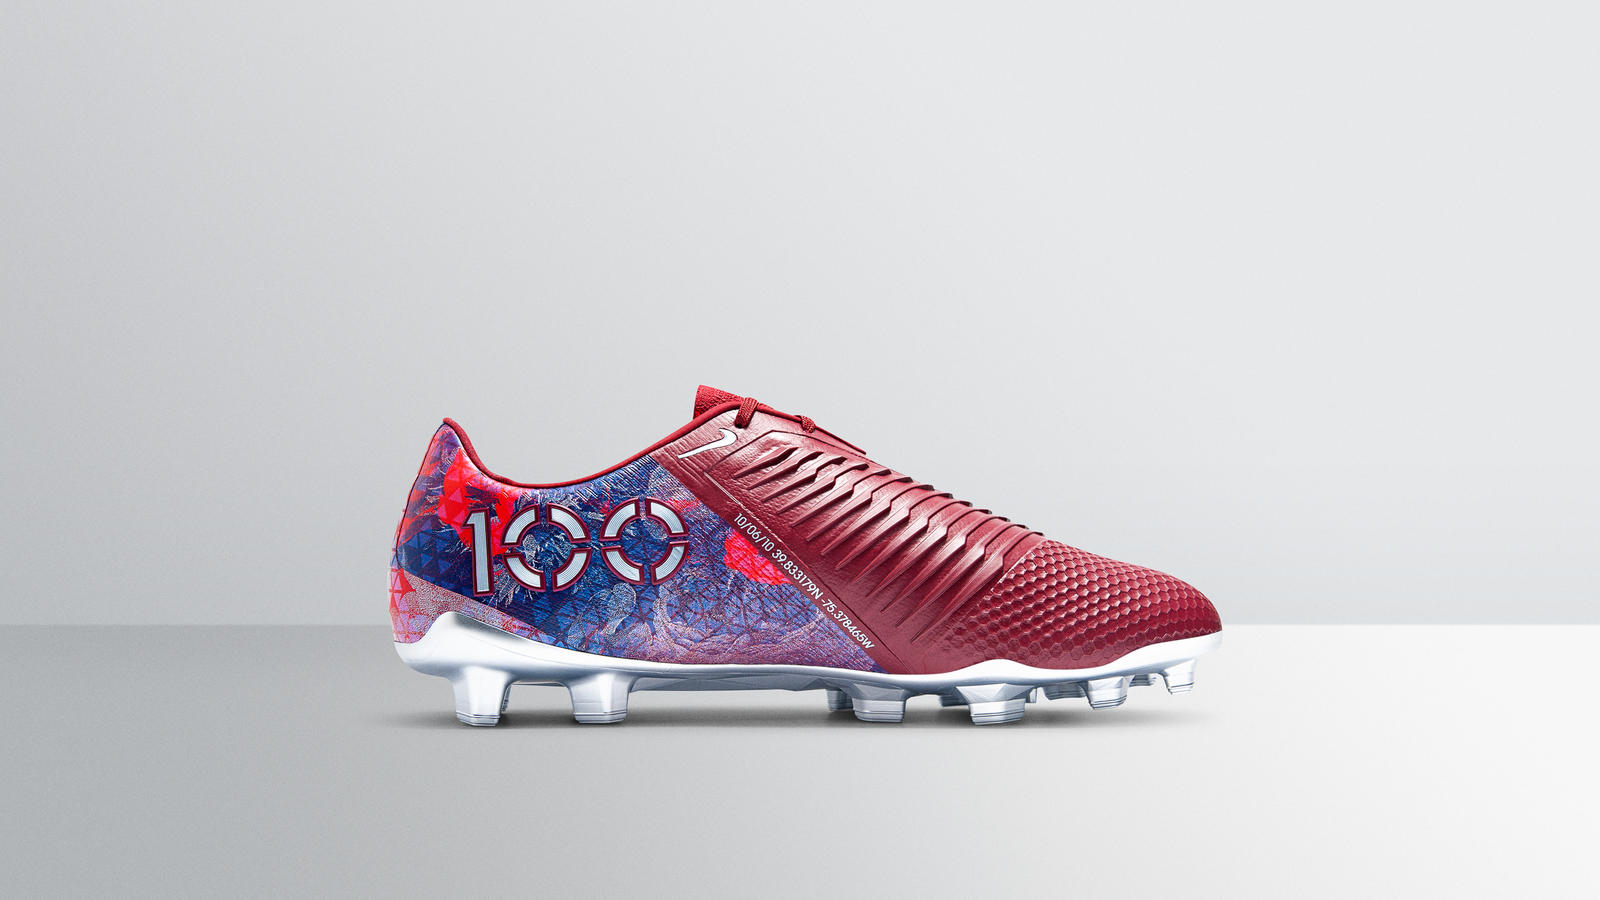 Nike_FeaturedFootwear_PVenom_EliteSE_AlexMorgan-1447_hd_1600.jpg